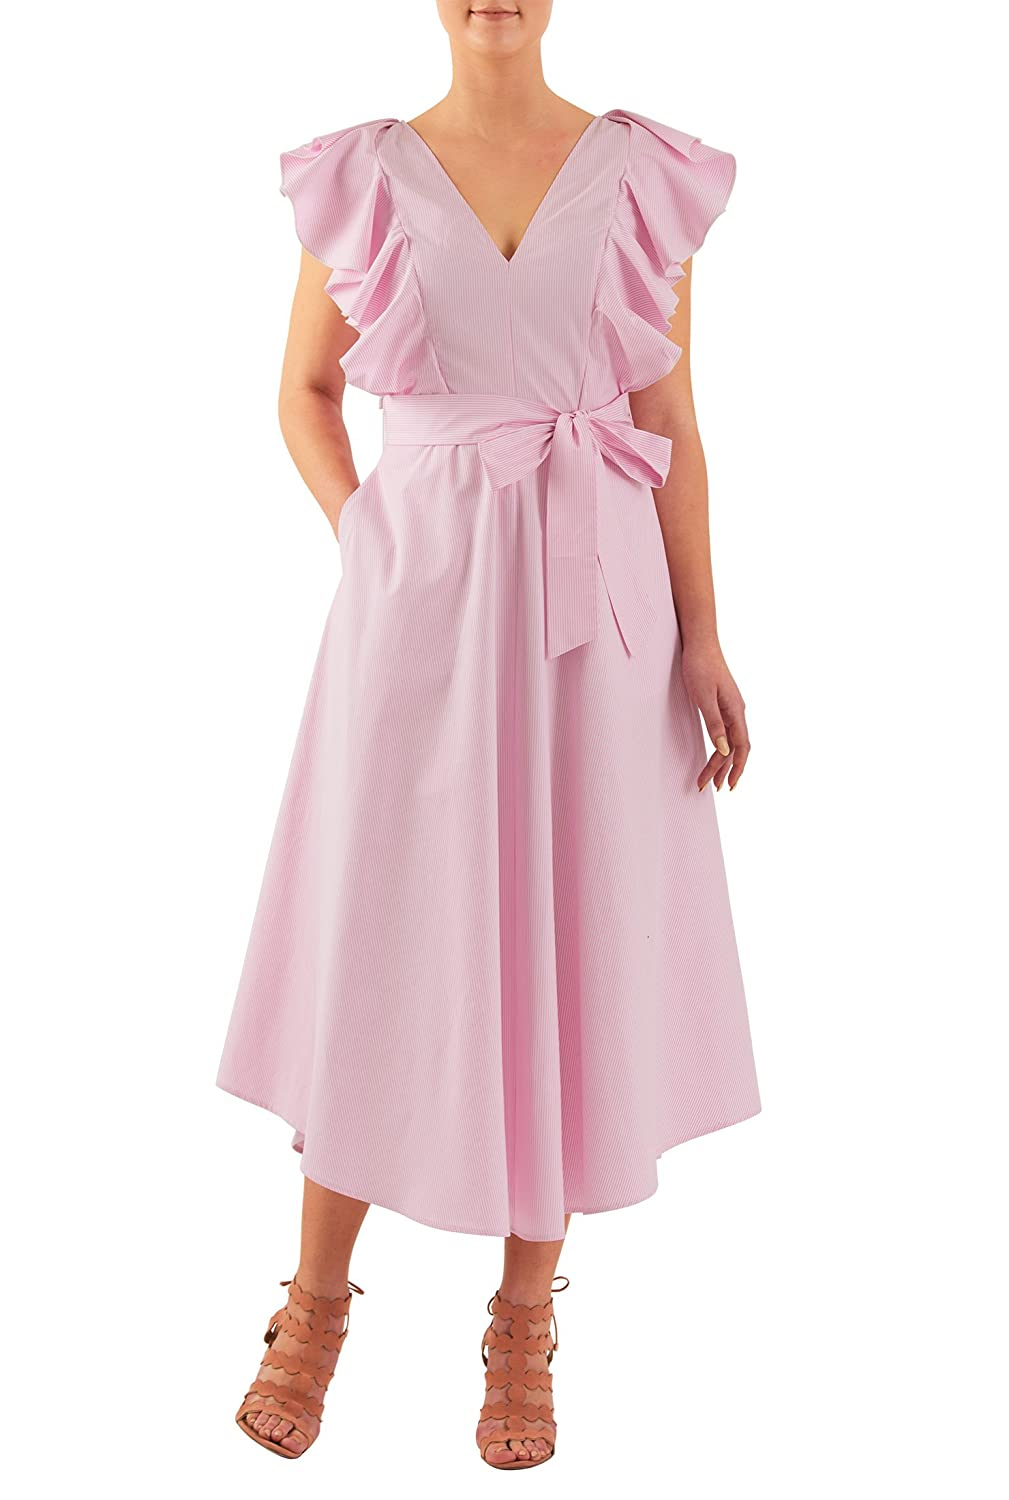 1940s Day Dresses eShakti Womens Ruffle seersucker stripe midi dress $52.95 AT vintagedancer.com